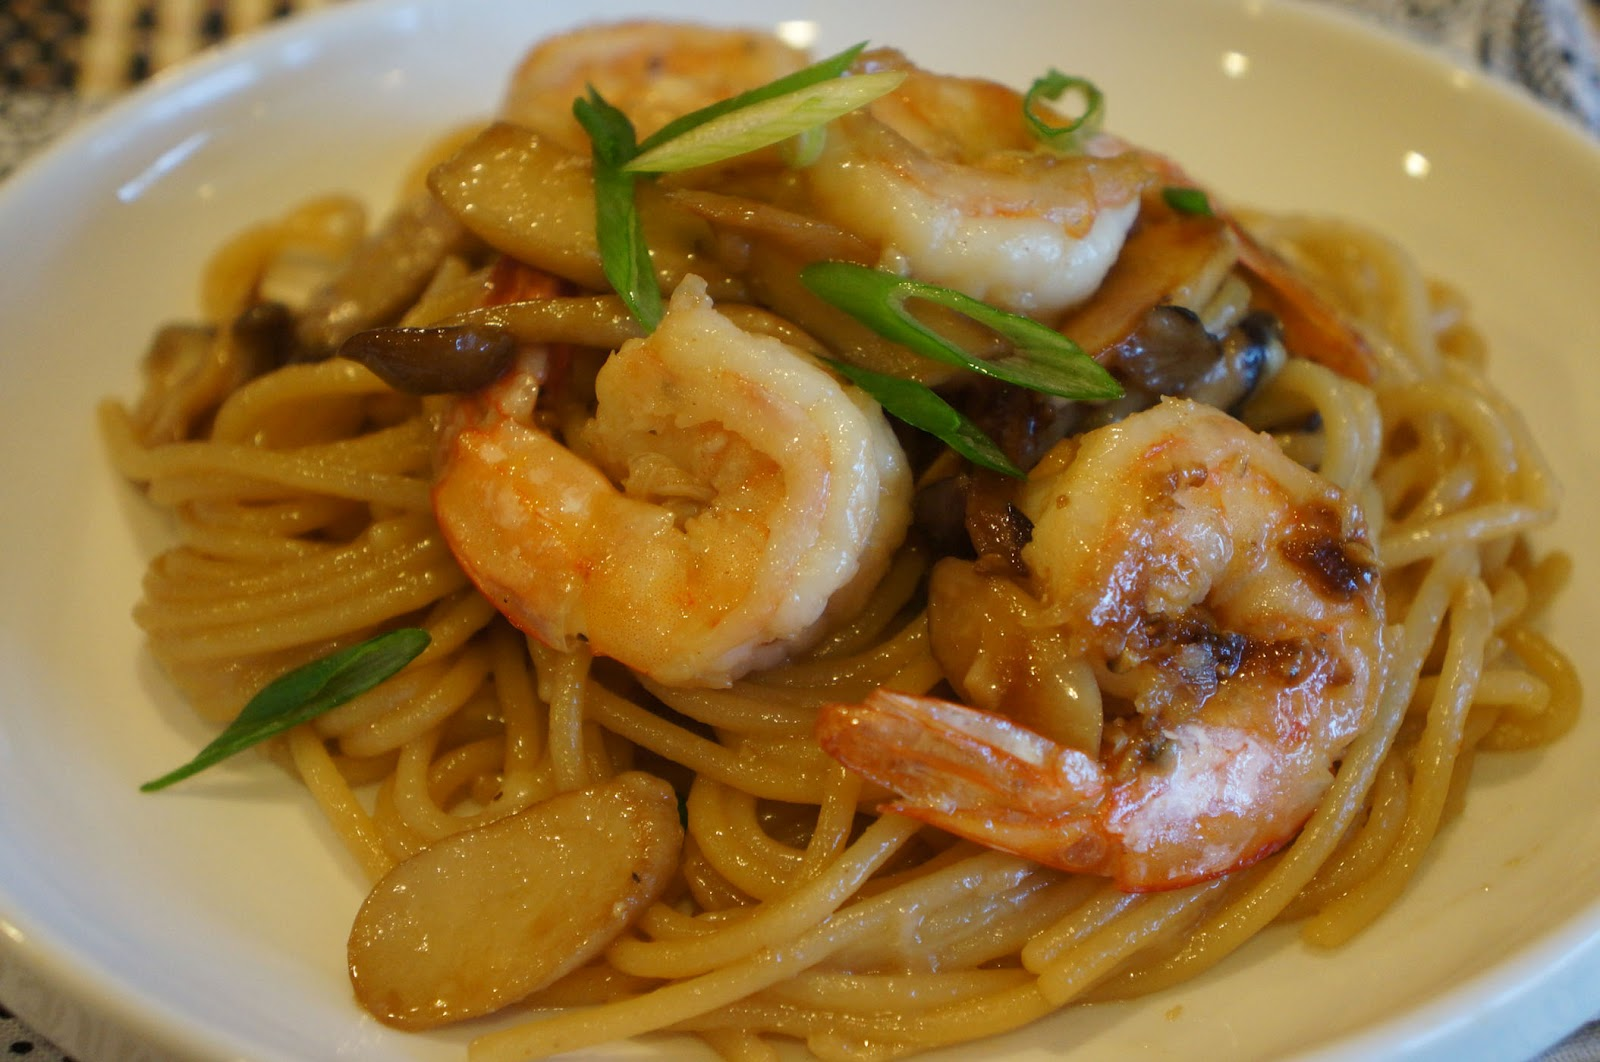 Gourmet by Kat: Shrimp garlic noodles